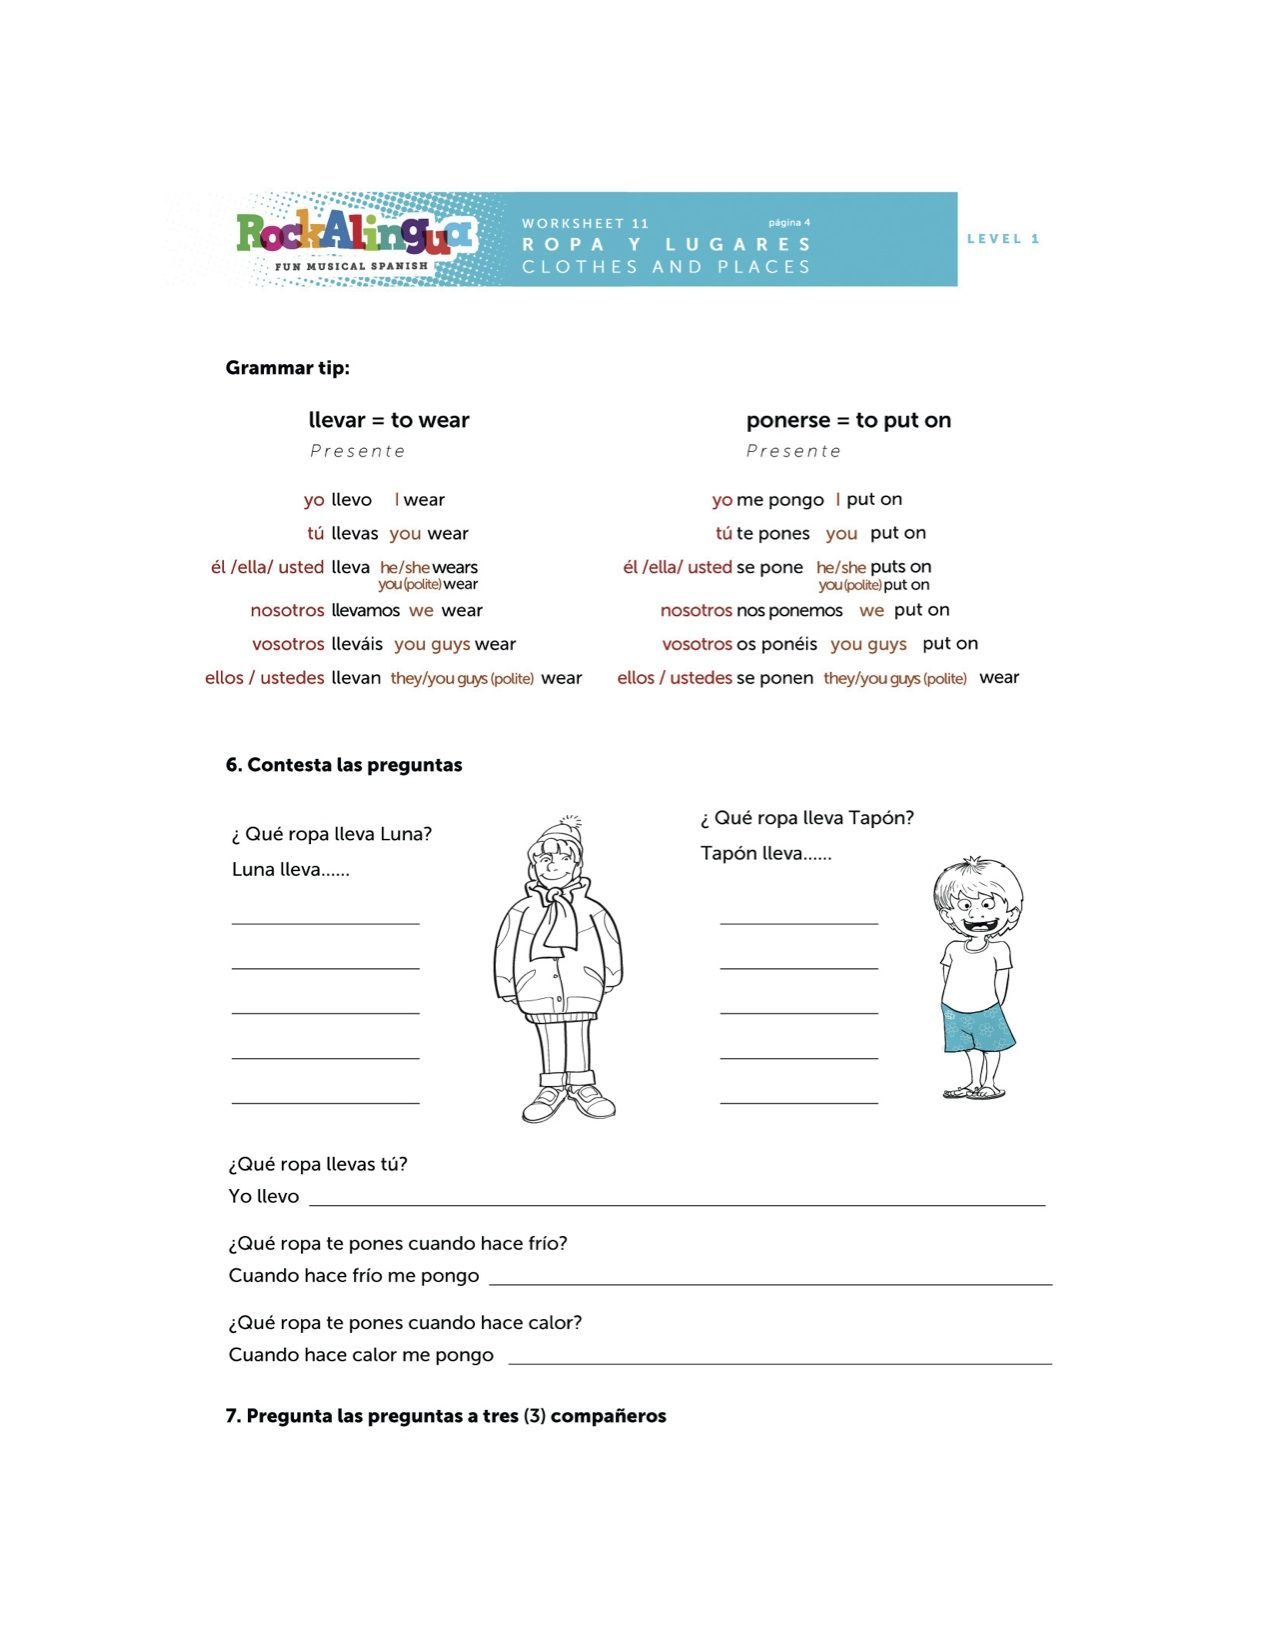 worksheet Weather Expressions In Spanish Worksheets spanish worksheet about clothes places and weather more teaching resources at www rockalingua